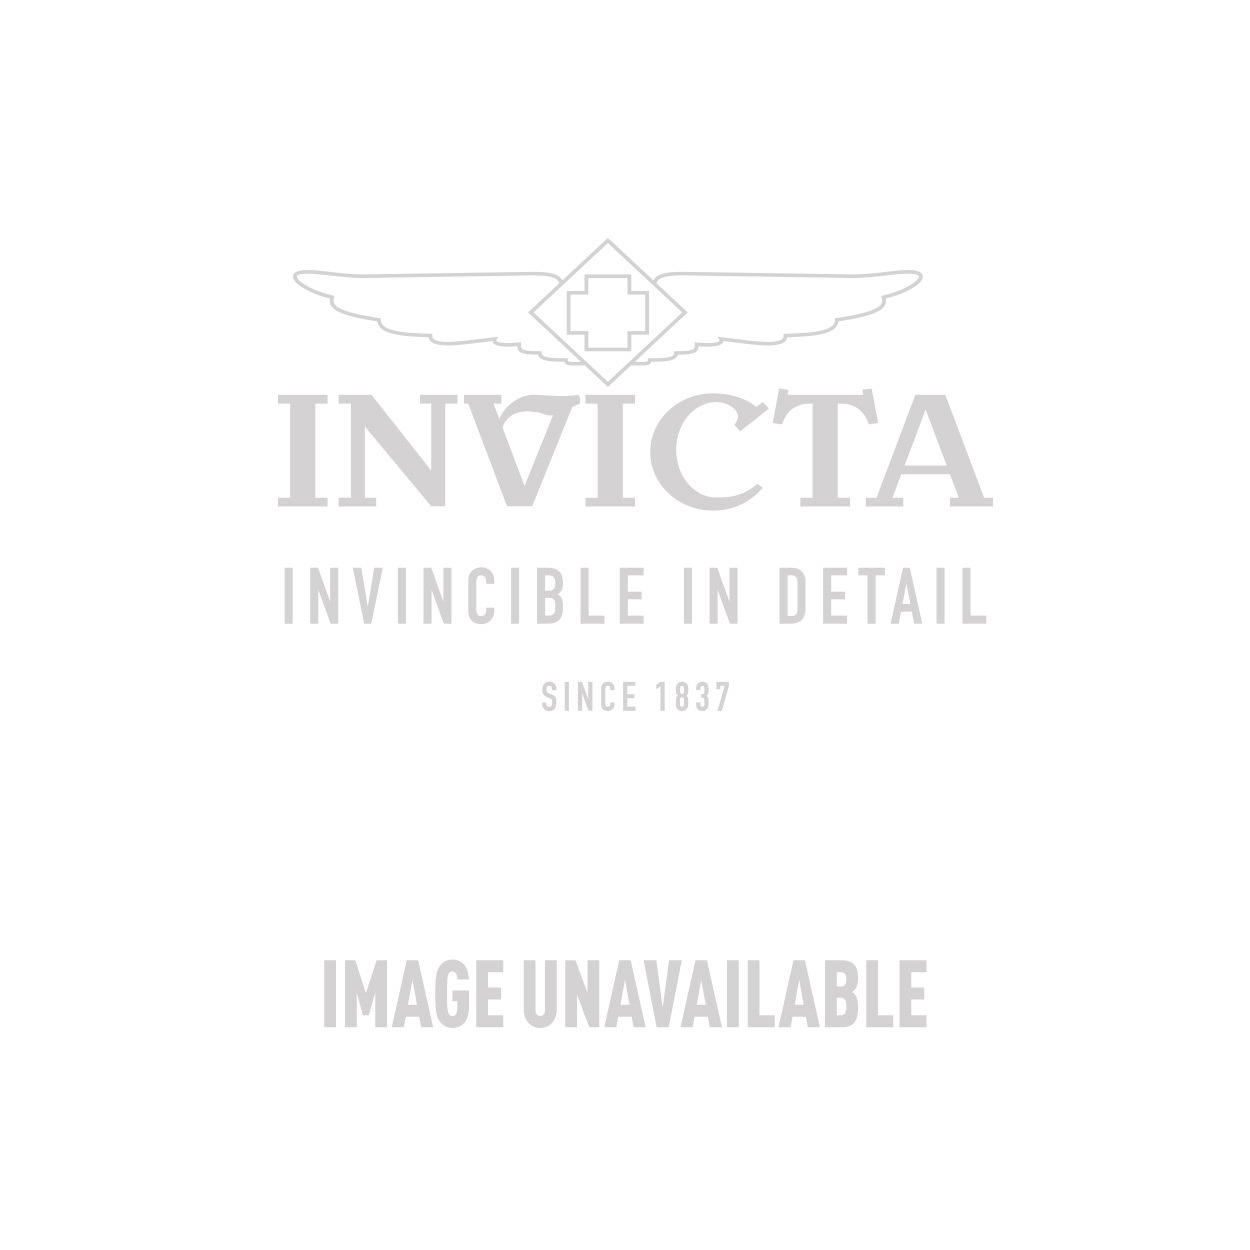 Invicta I-Force Quartz Watch - Stainless Steel case with Black tone Silicone band - Model 16926